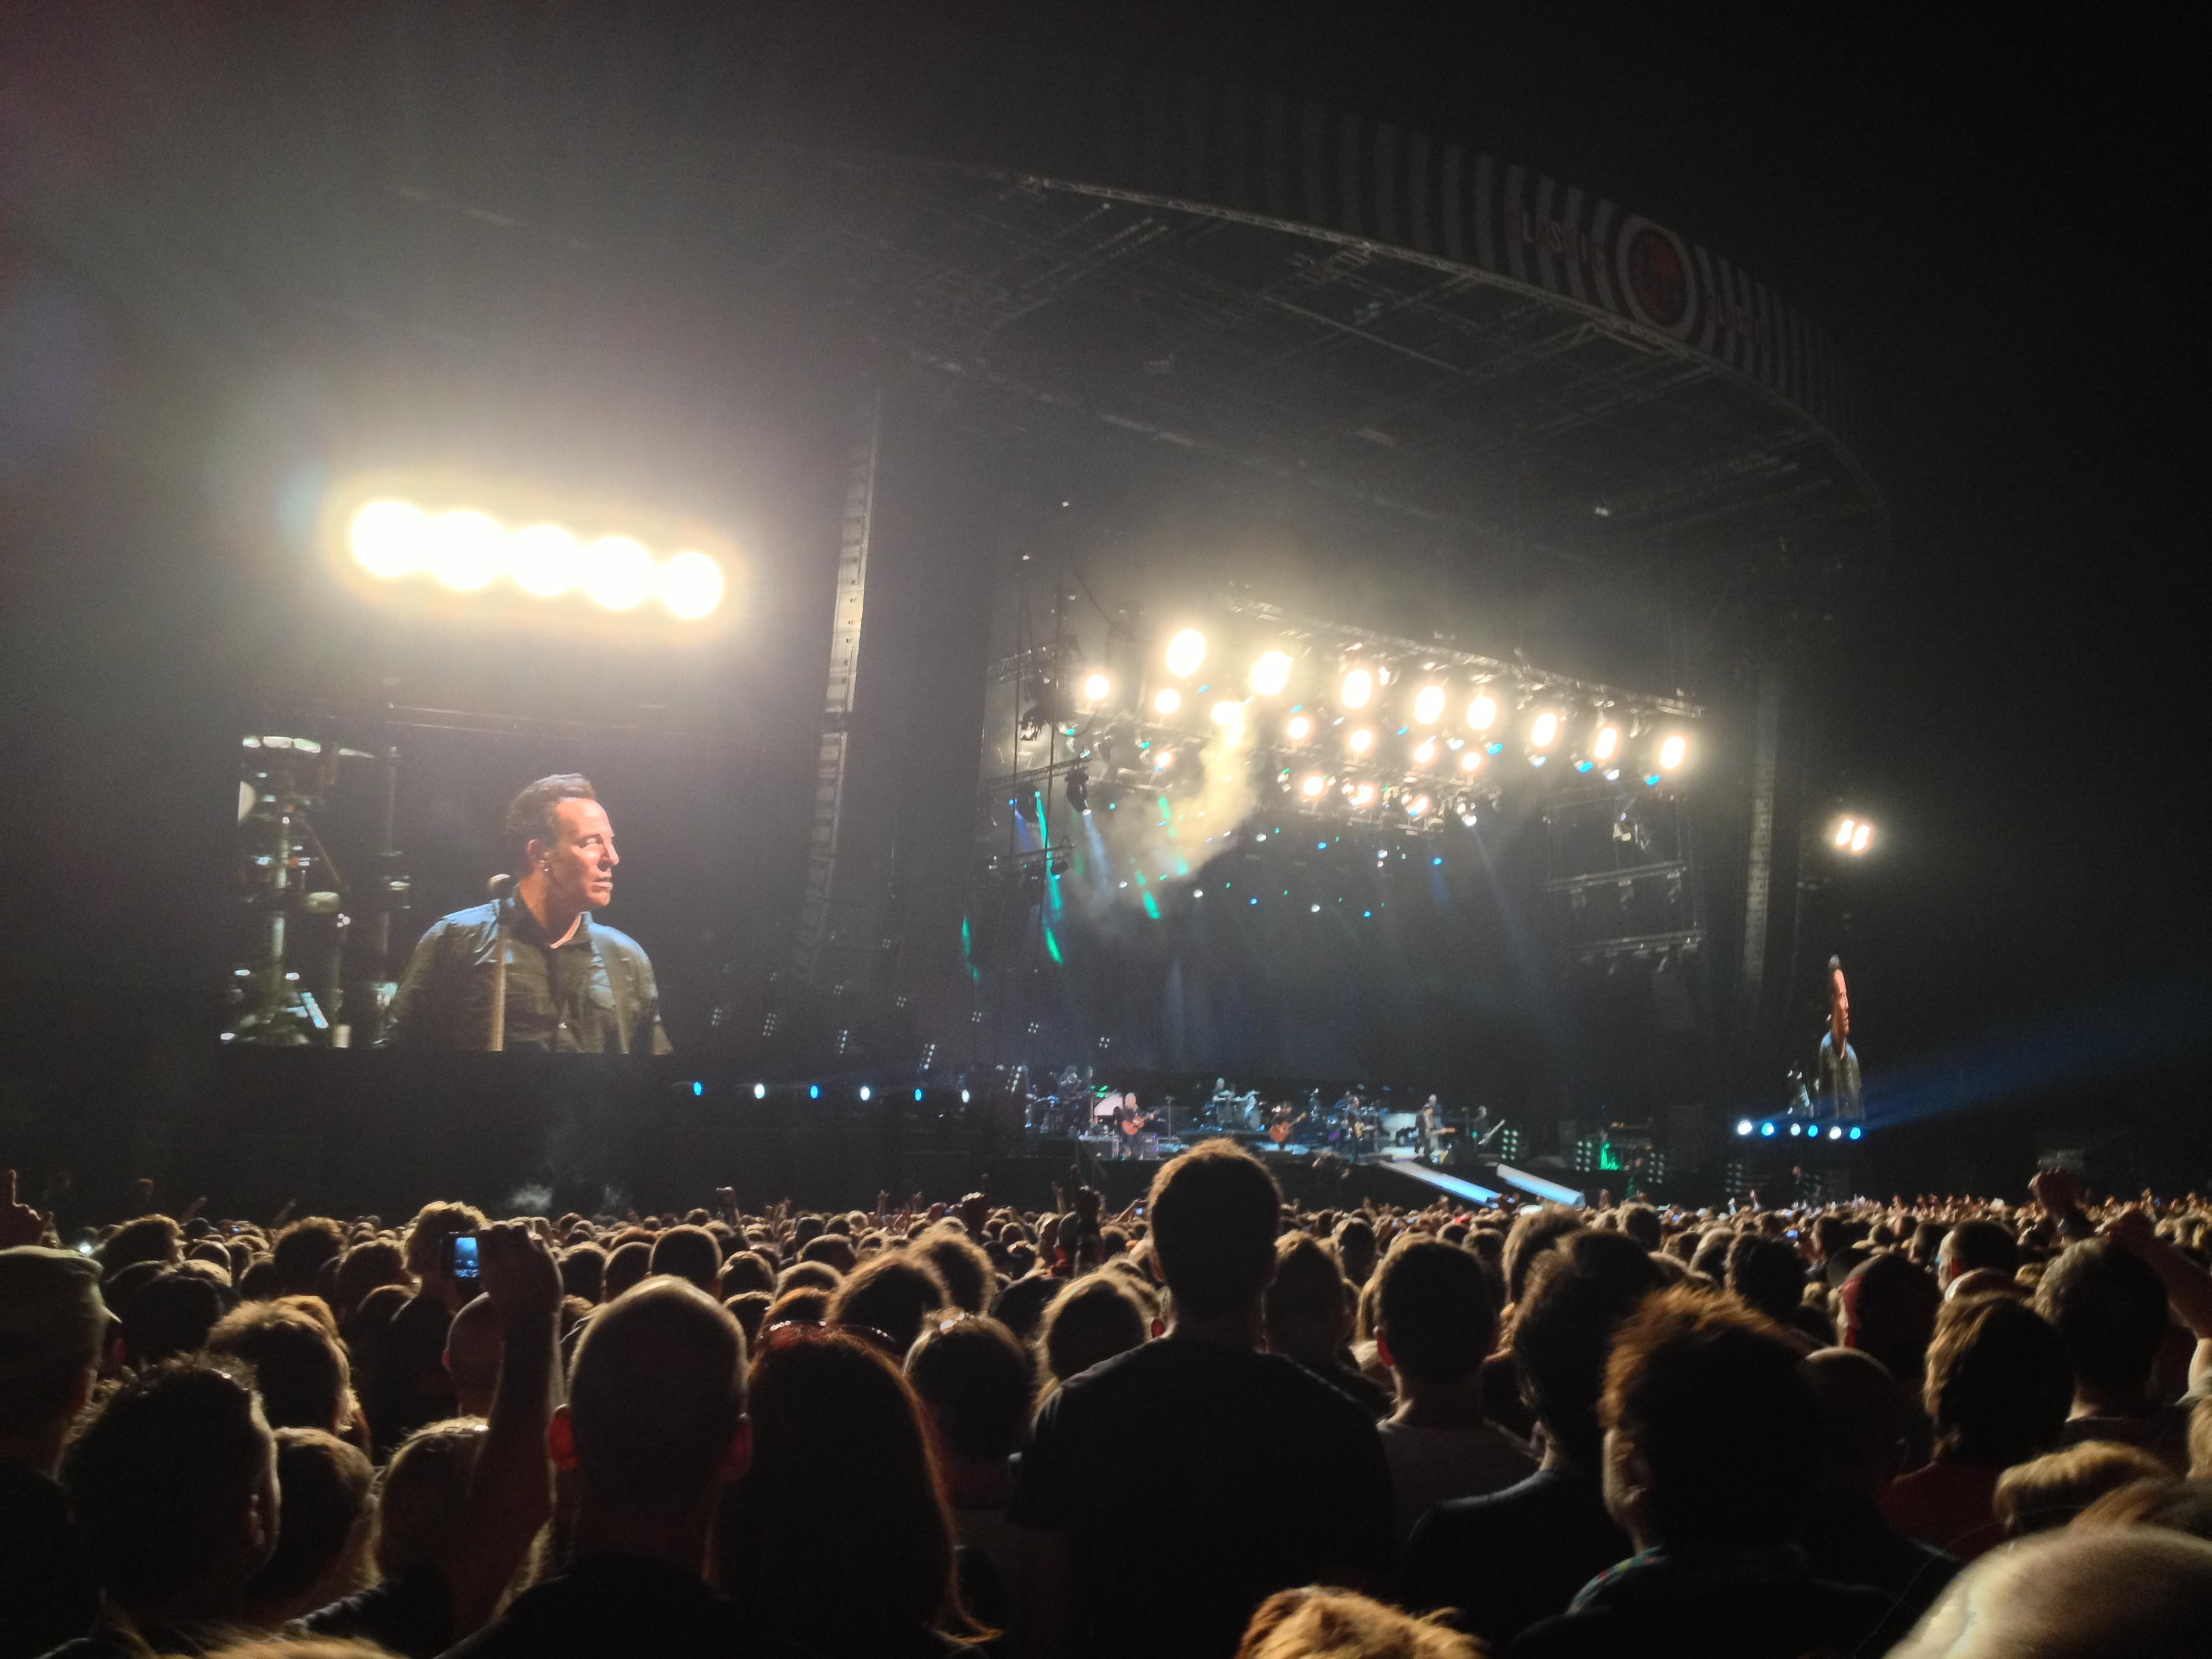 Concertreview: Wrecking Werchter